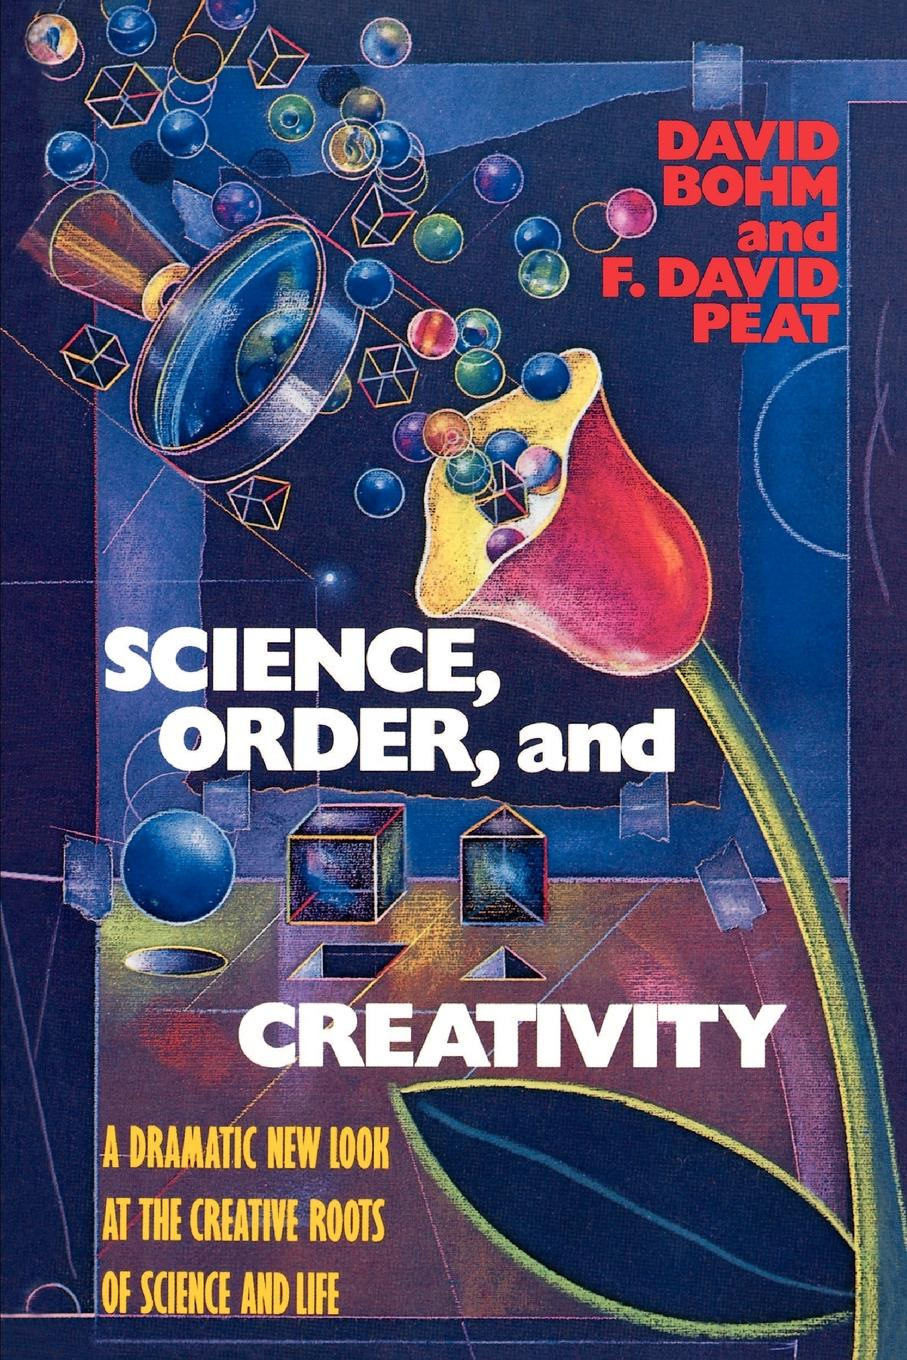 David Bohm, F. David Peat Science, Order, and Creativity michael roberto a unlocking creativity how to solve any problem and make the best decisions by shifting creative mindsets